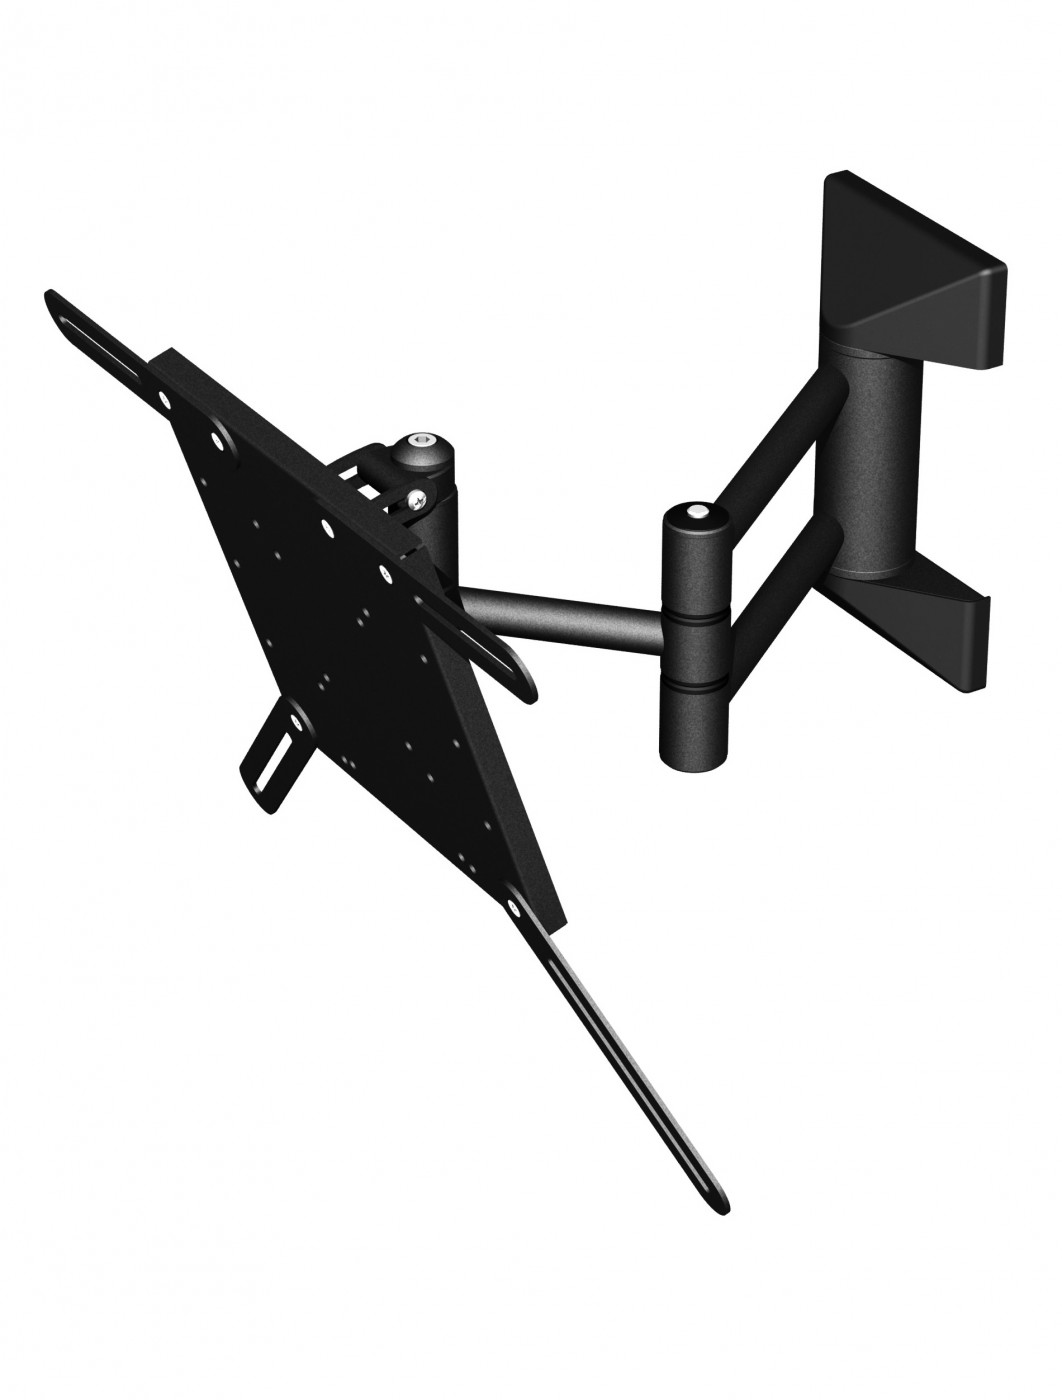 21-37 inch Cantilever wall TV mount